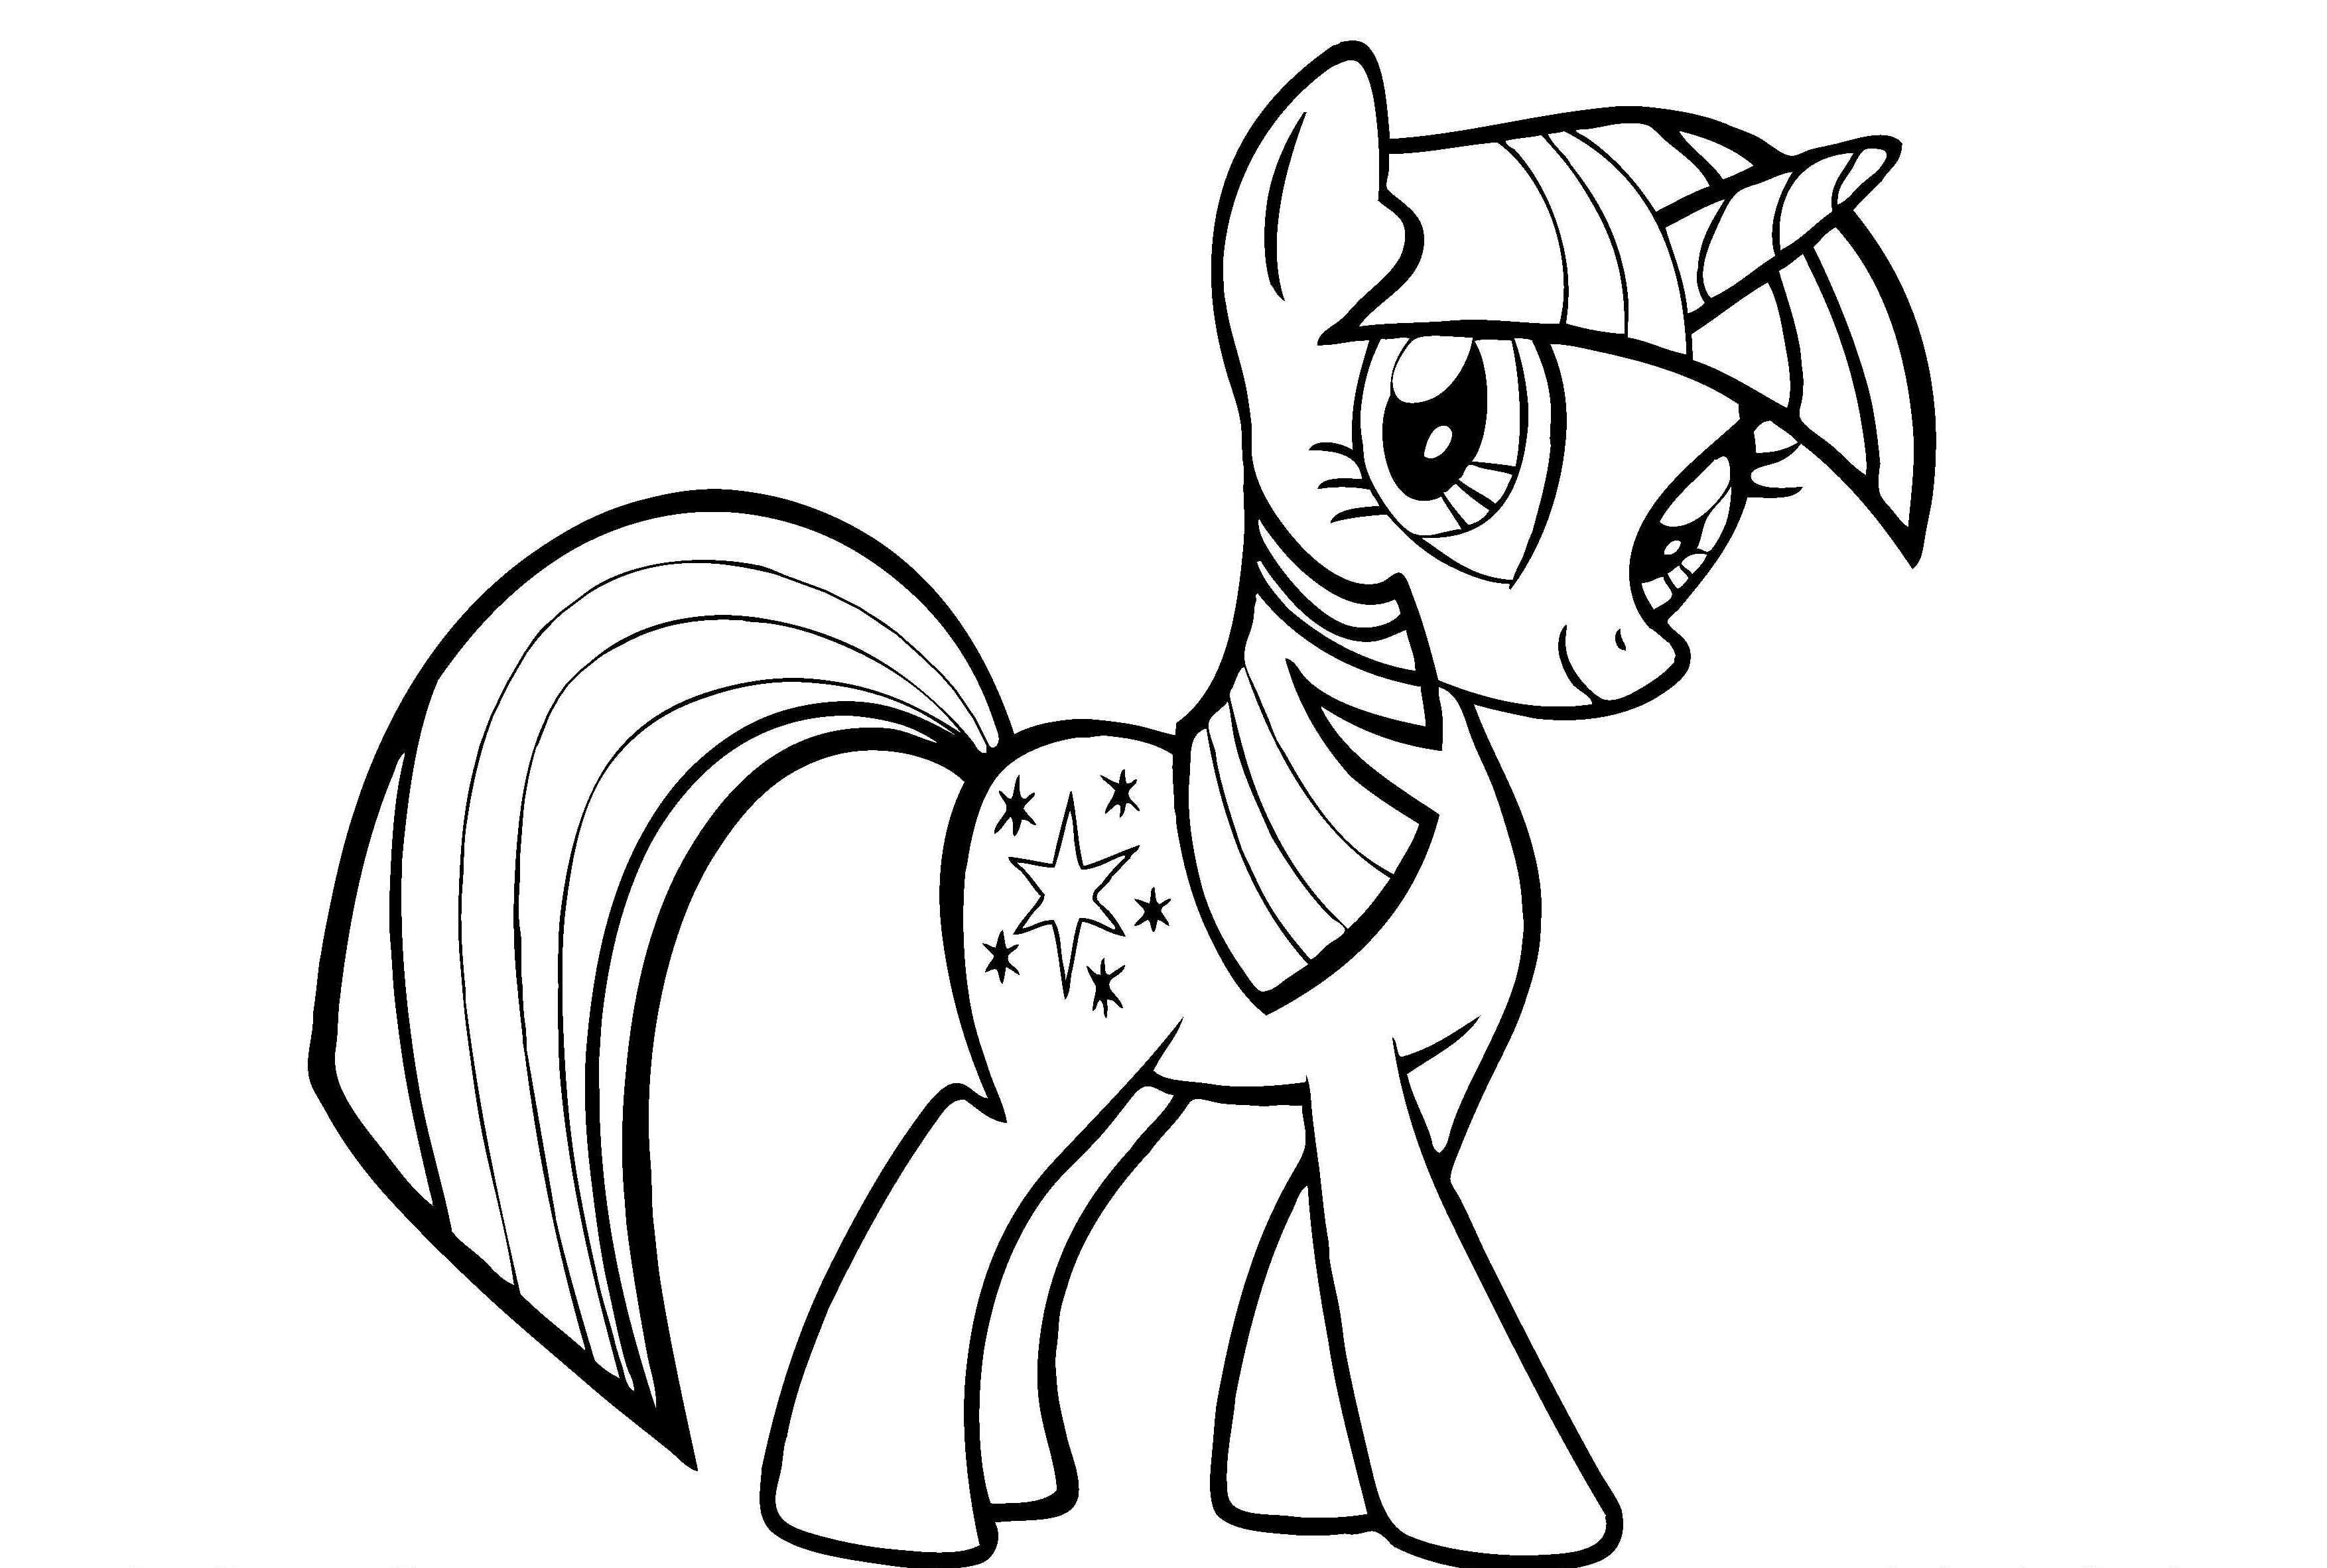 coloring pages of twilight sparkle twilight sparkle coloring pages best coloring pages for kids pages twilight of coloring sparkle